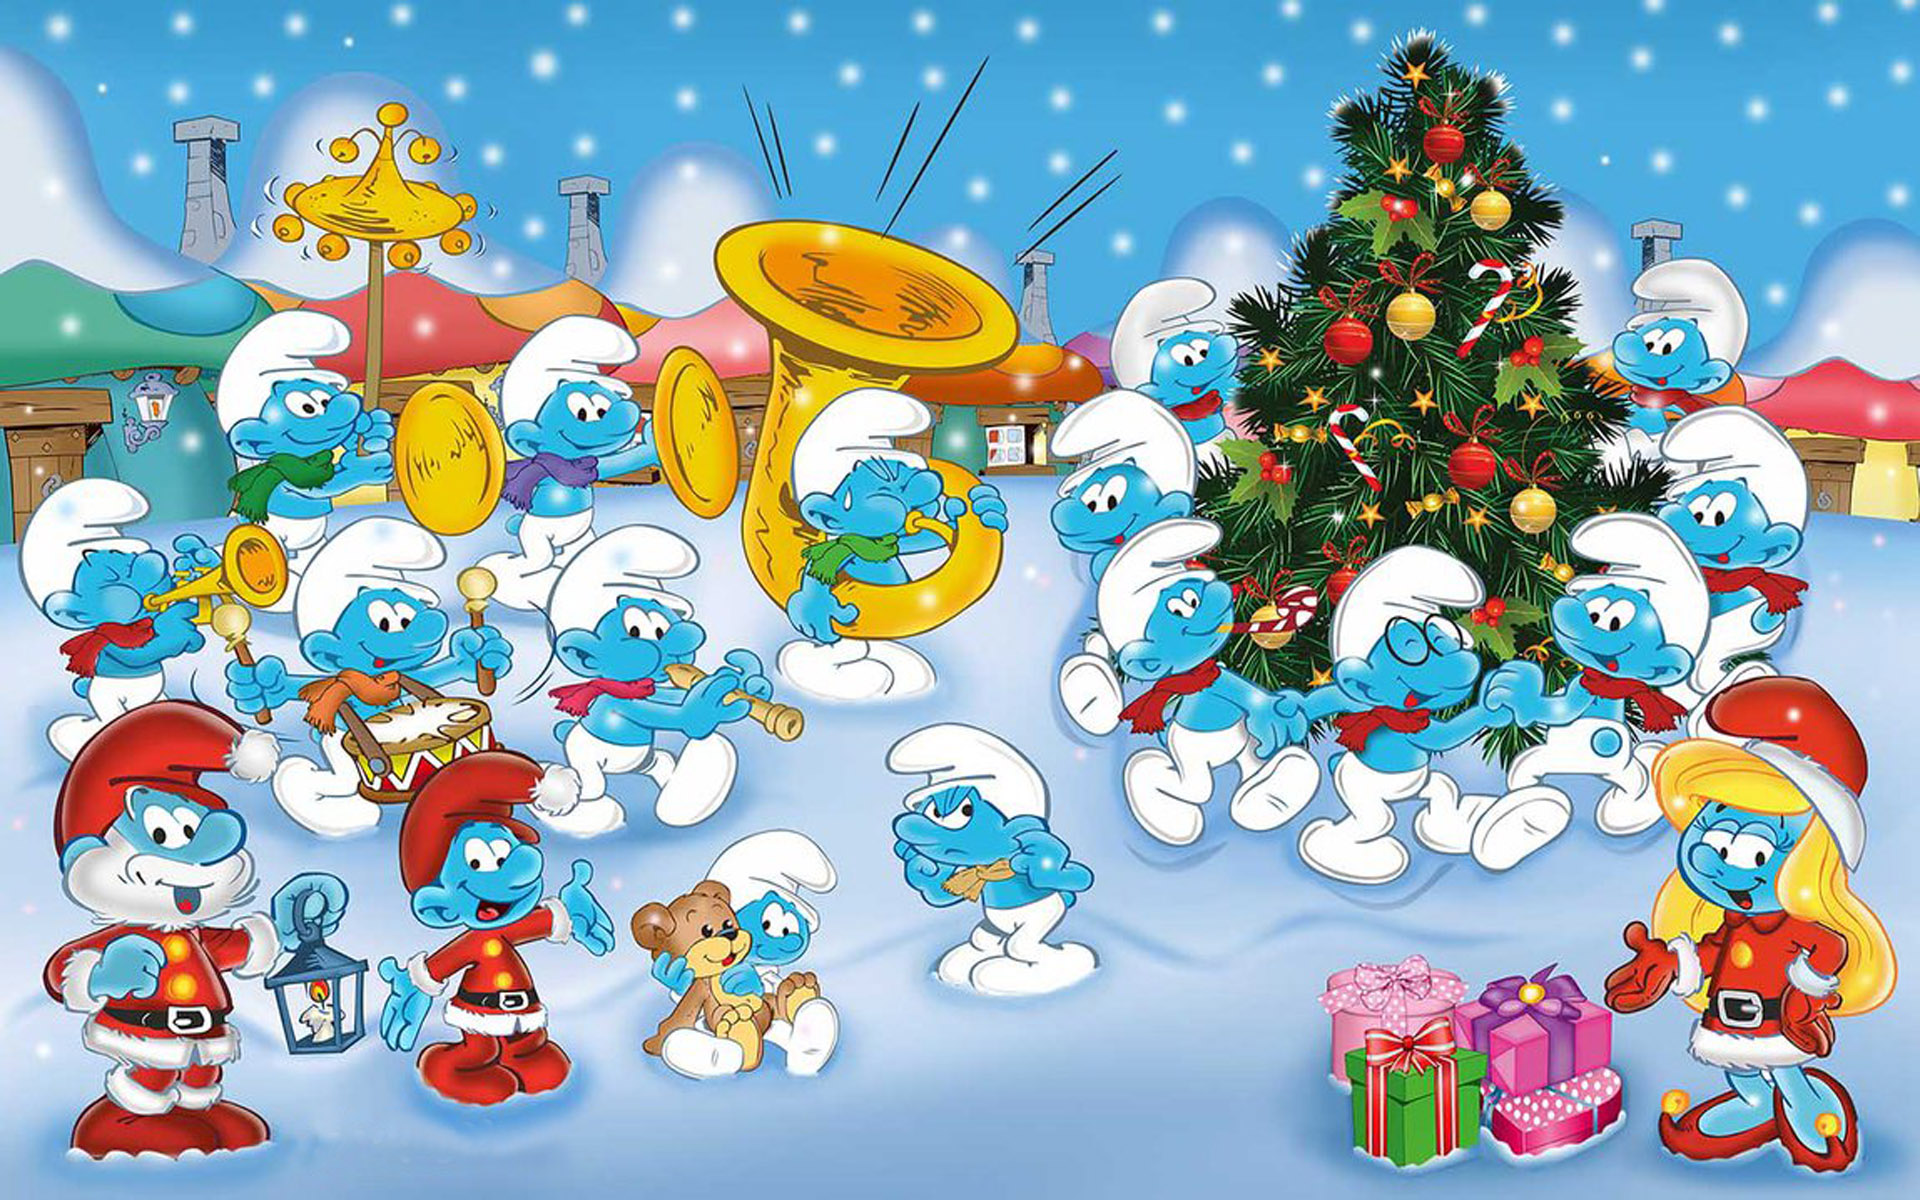 Smurf Wallpaper 3d The Smurfs Music Orchestra Cartoons Merry Christmas And